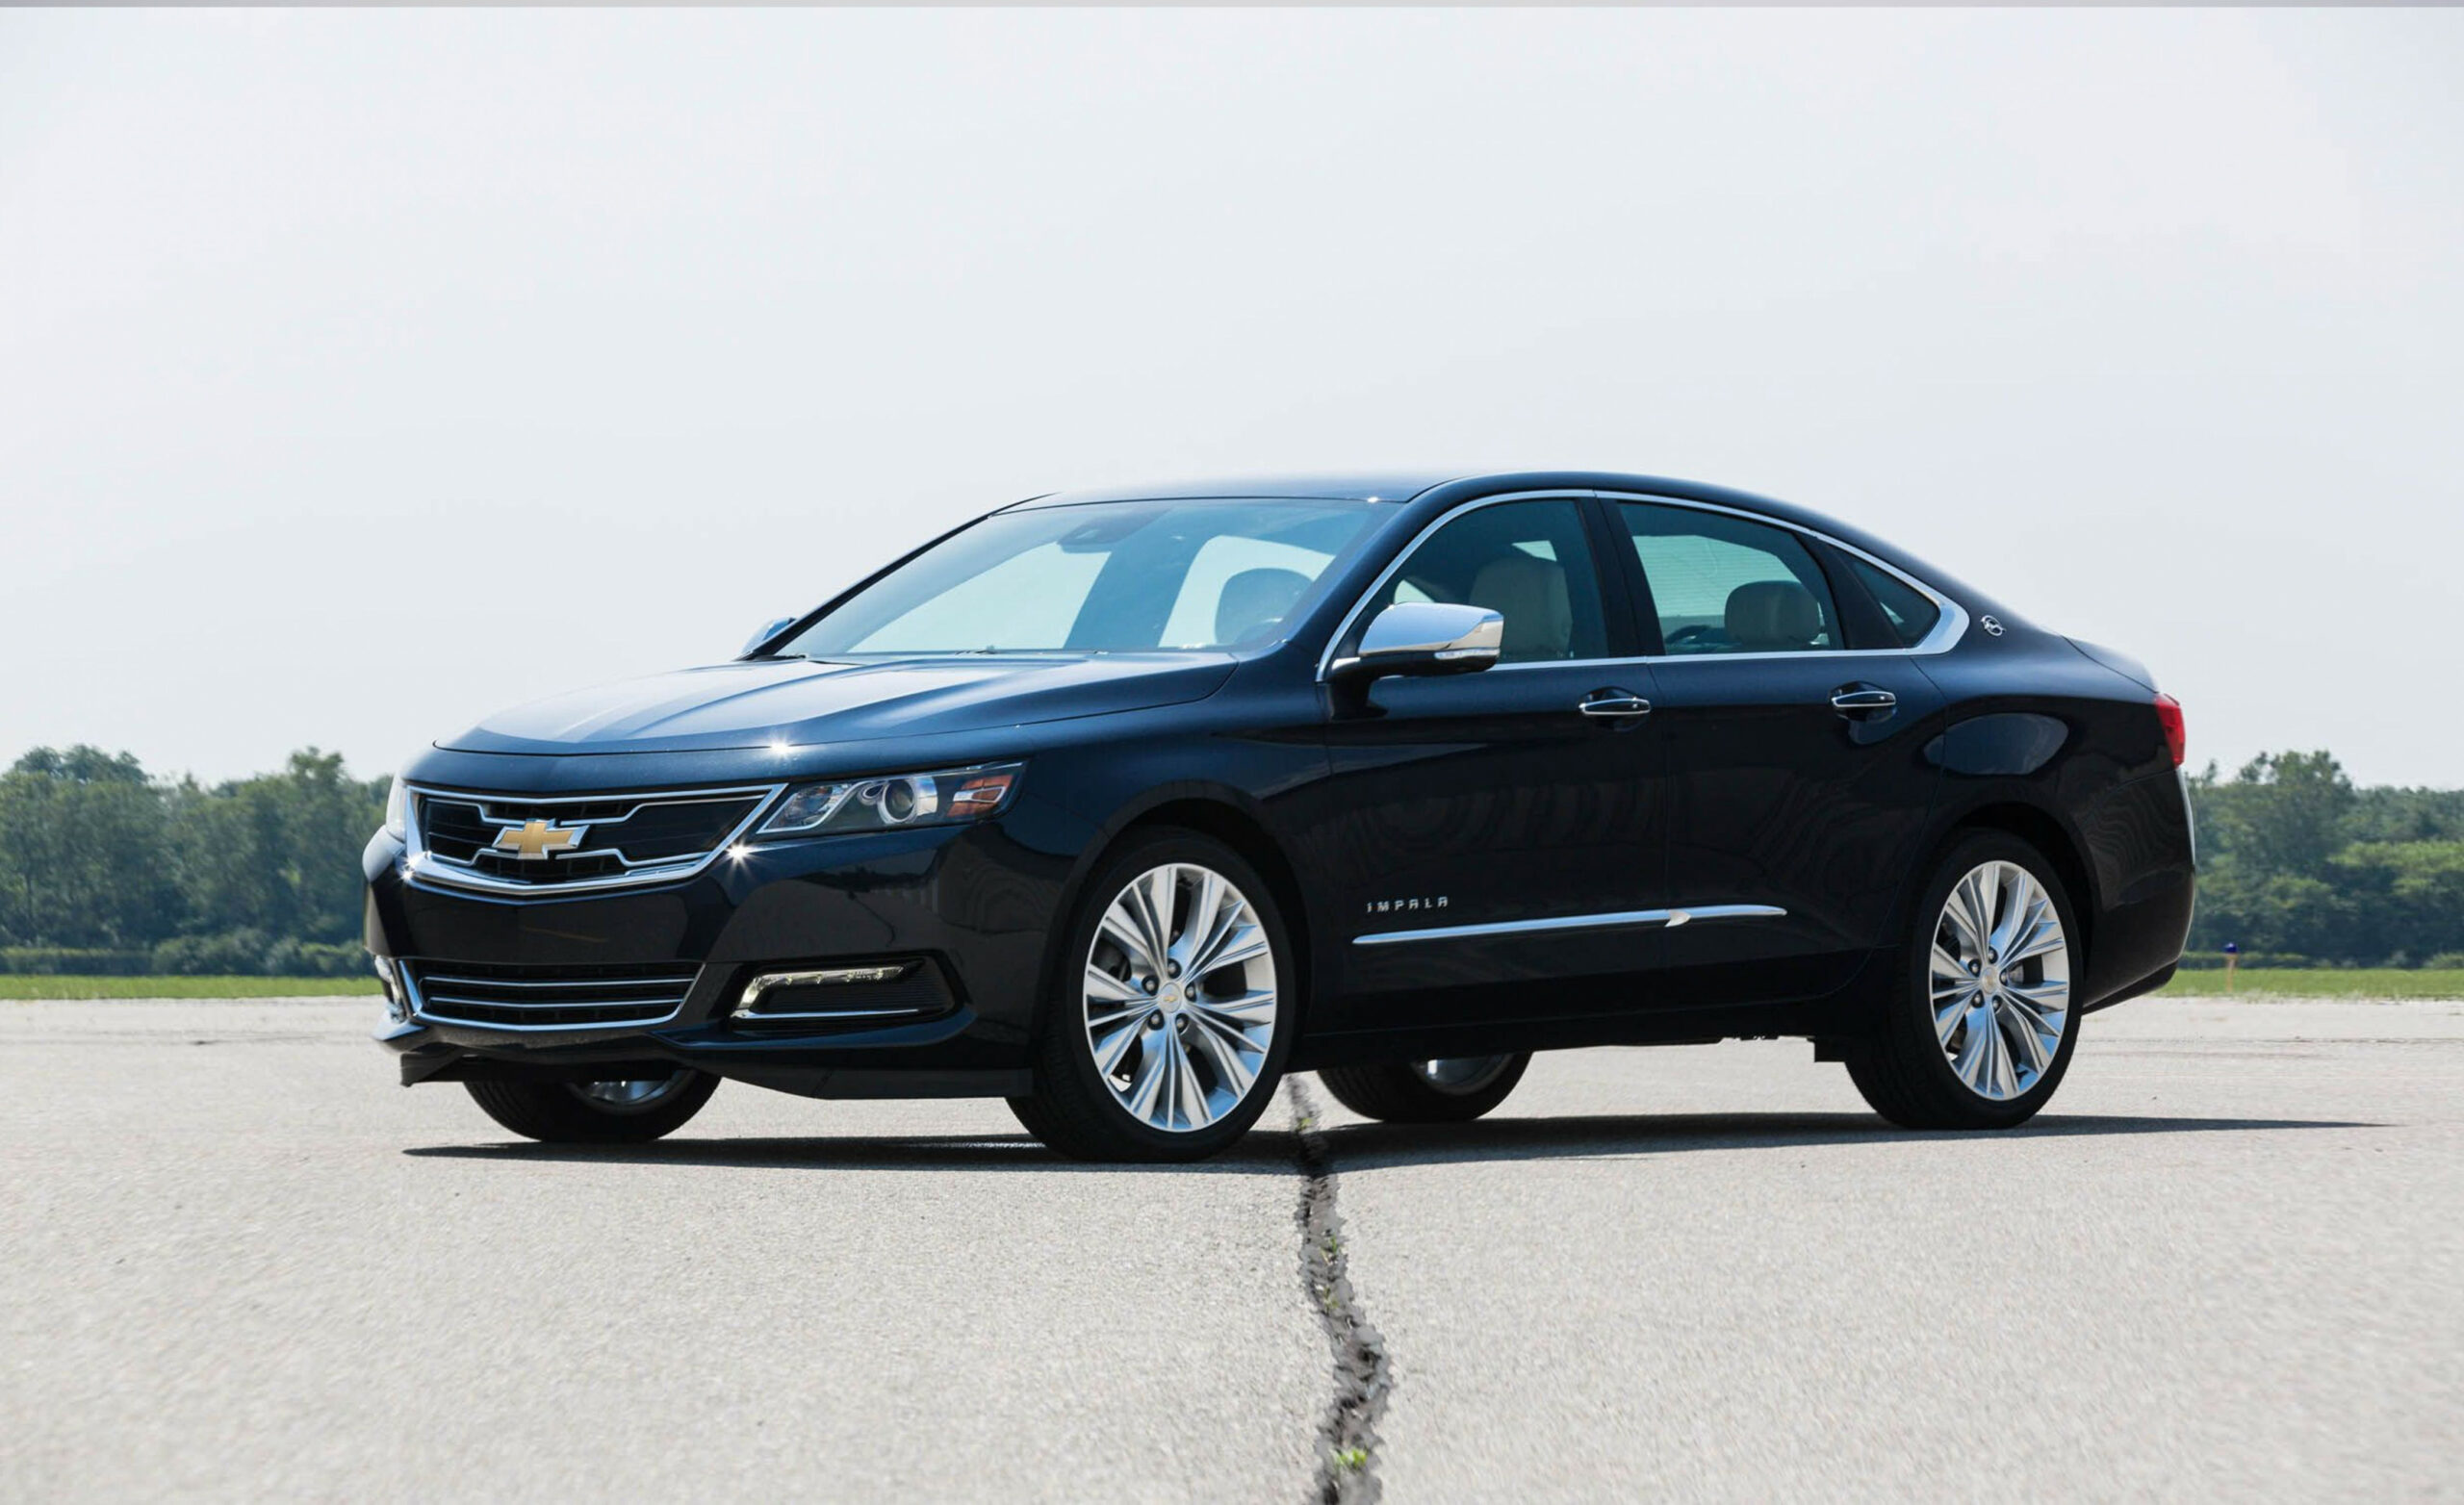 6 Chevrolet Impala Review, Pricing, and Specs